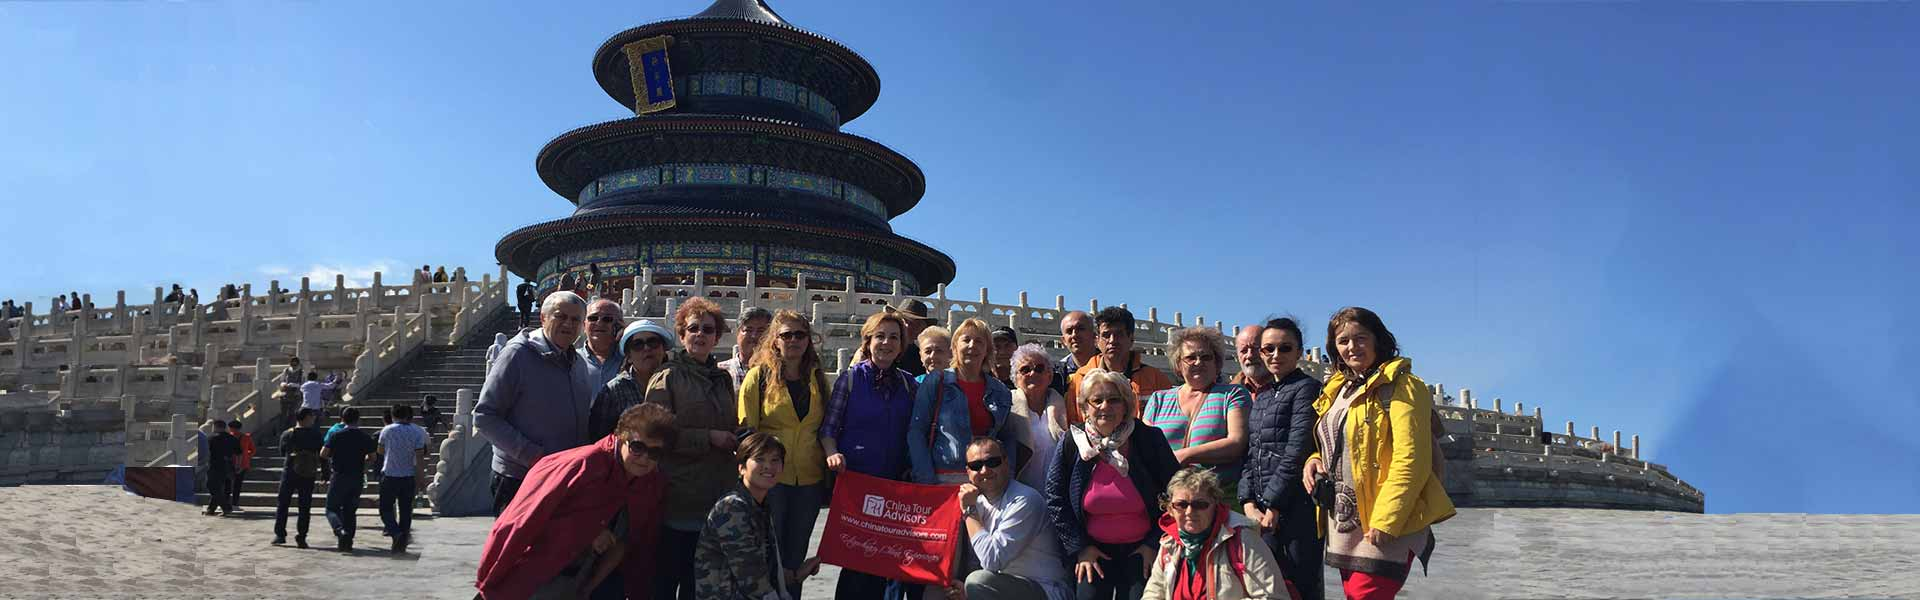 Small Group Tours Packages in China